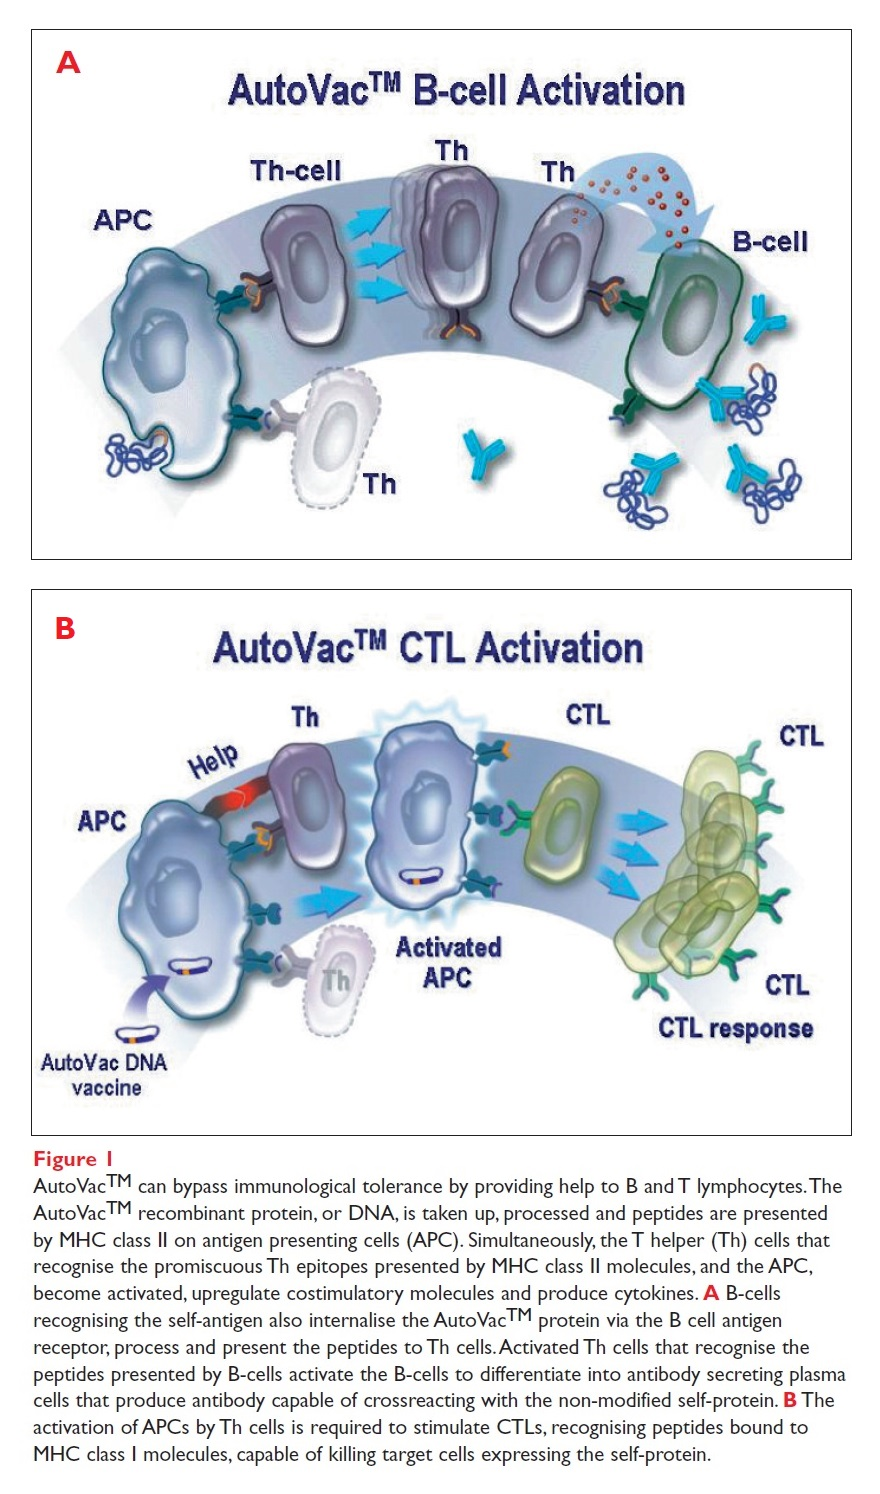 Figure 1 AutoVac can bypass immunological tolerance by providing help to B and T lymphocytes